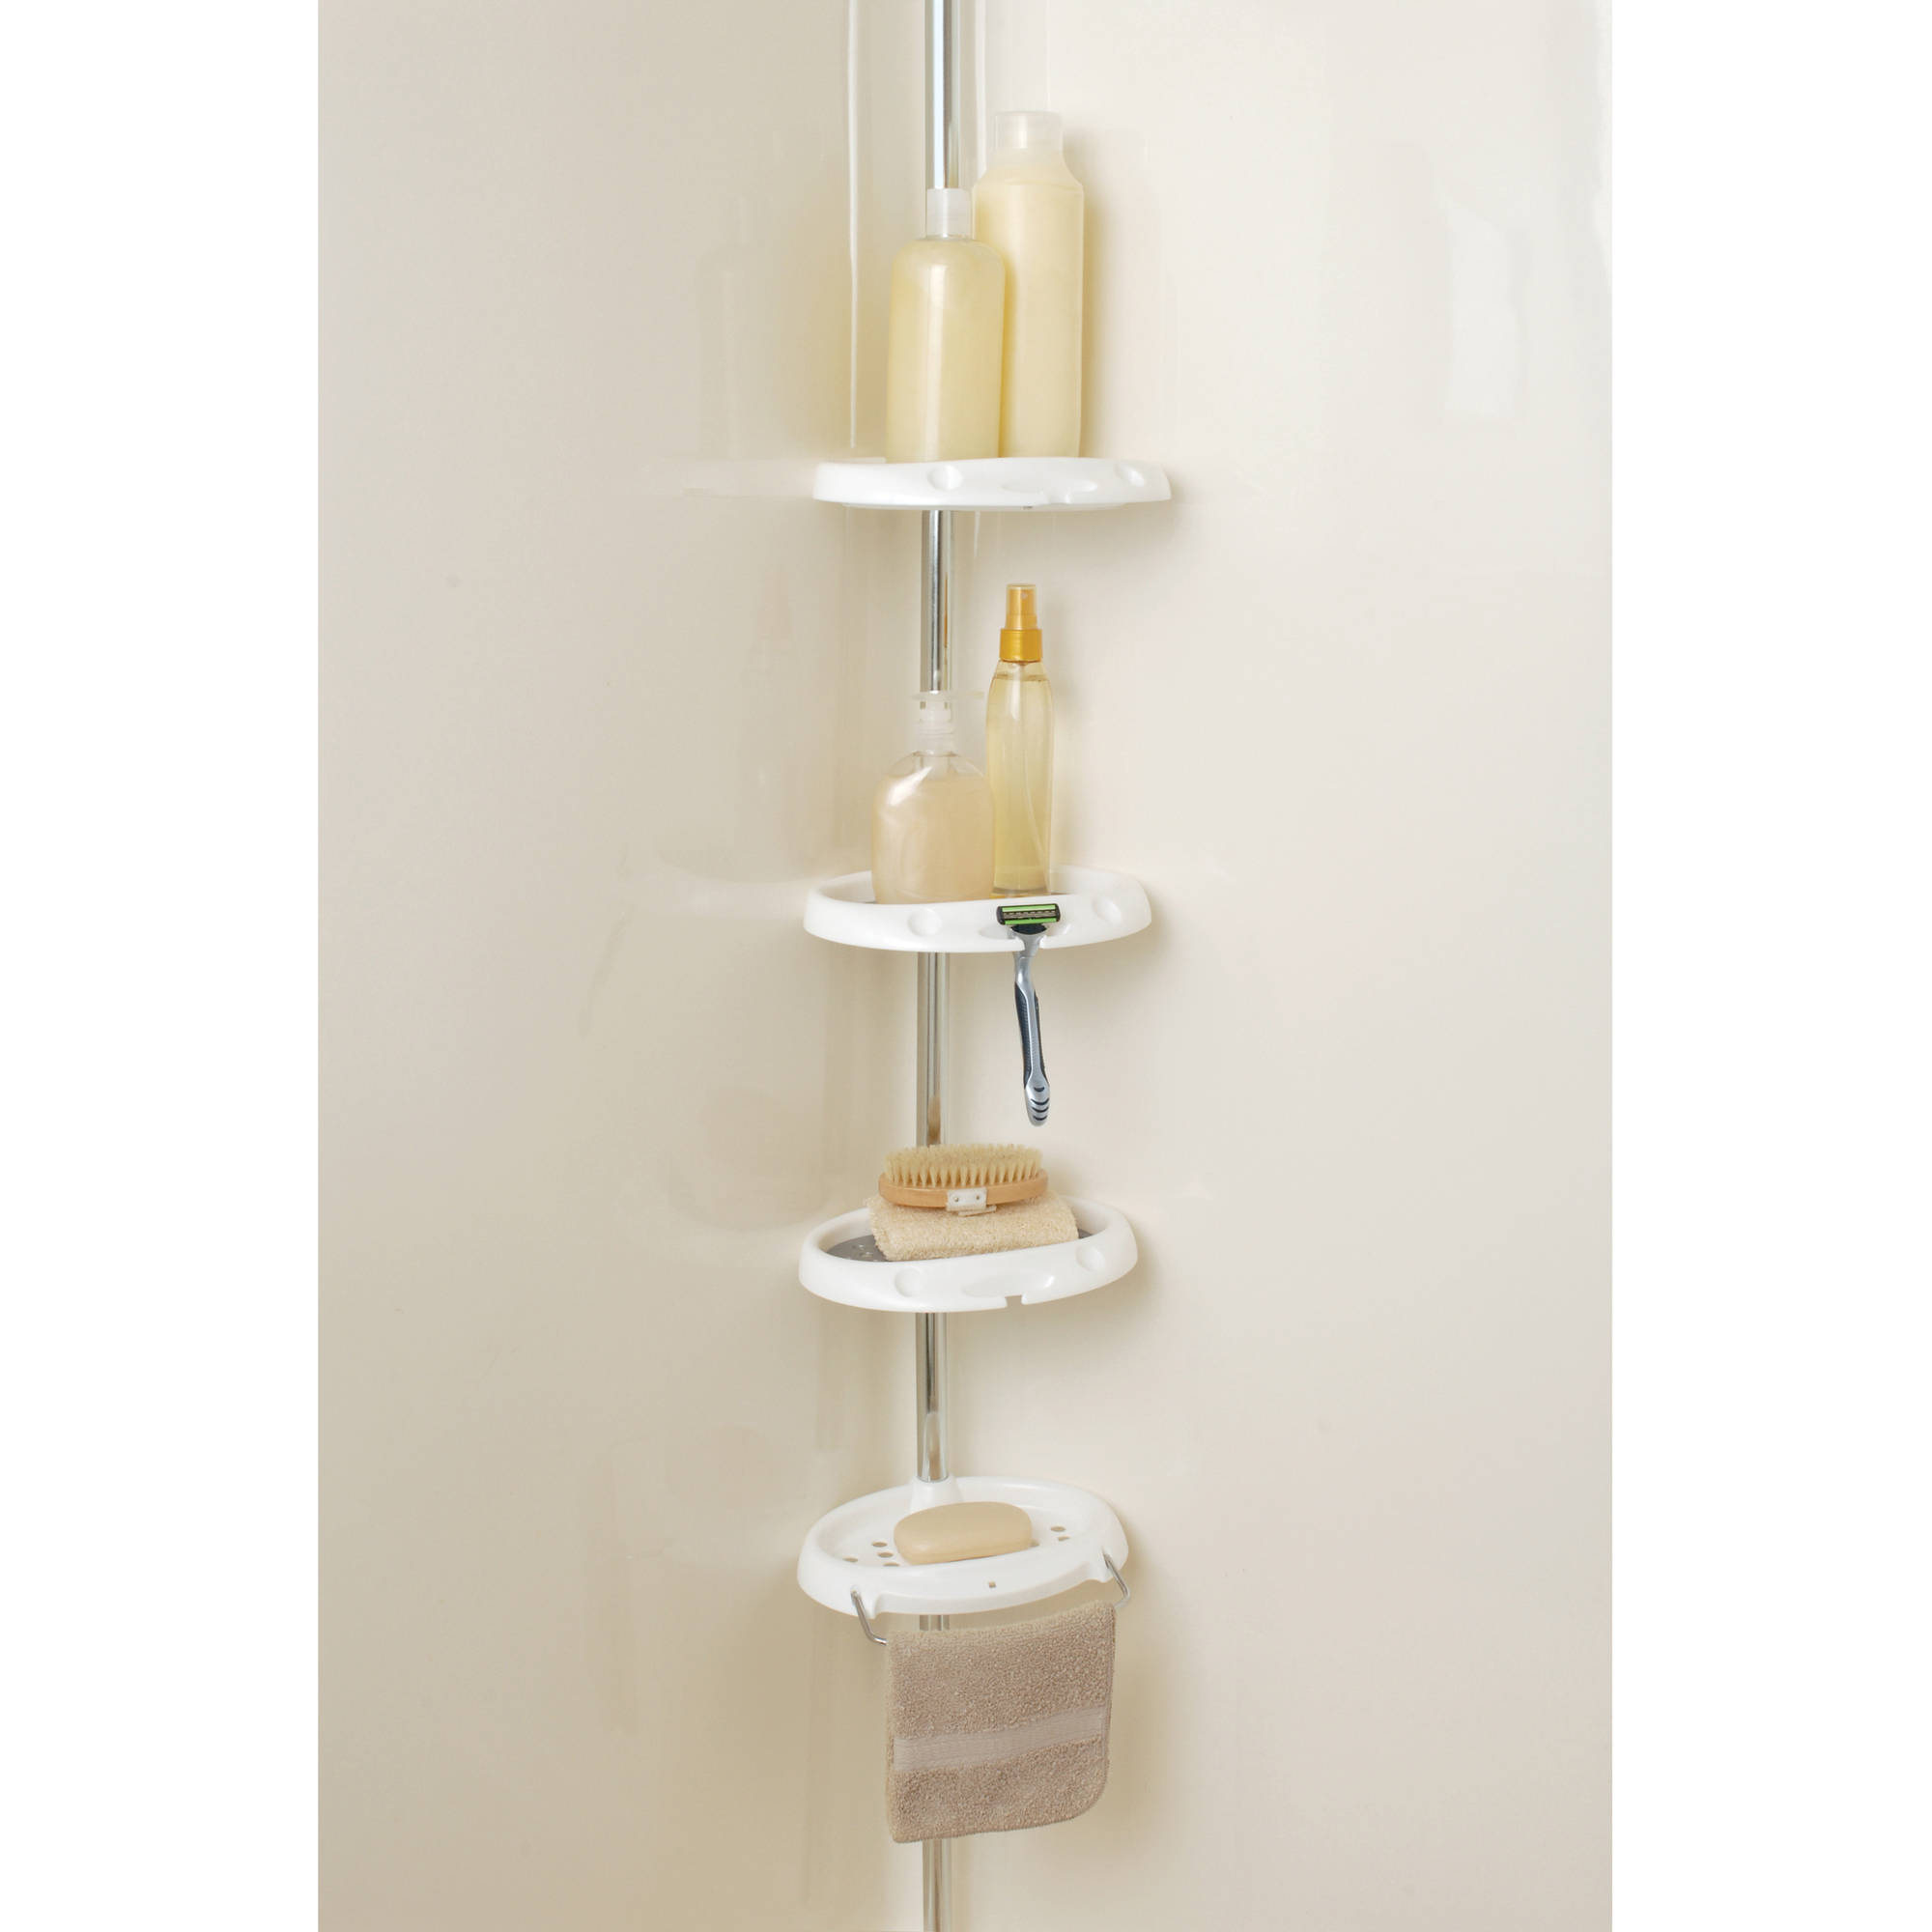 bathroom corner shower caddy | My Web Value